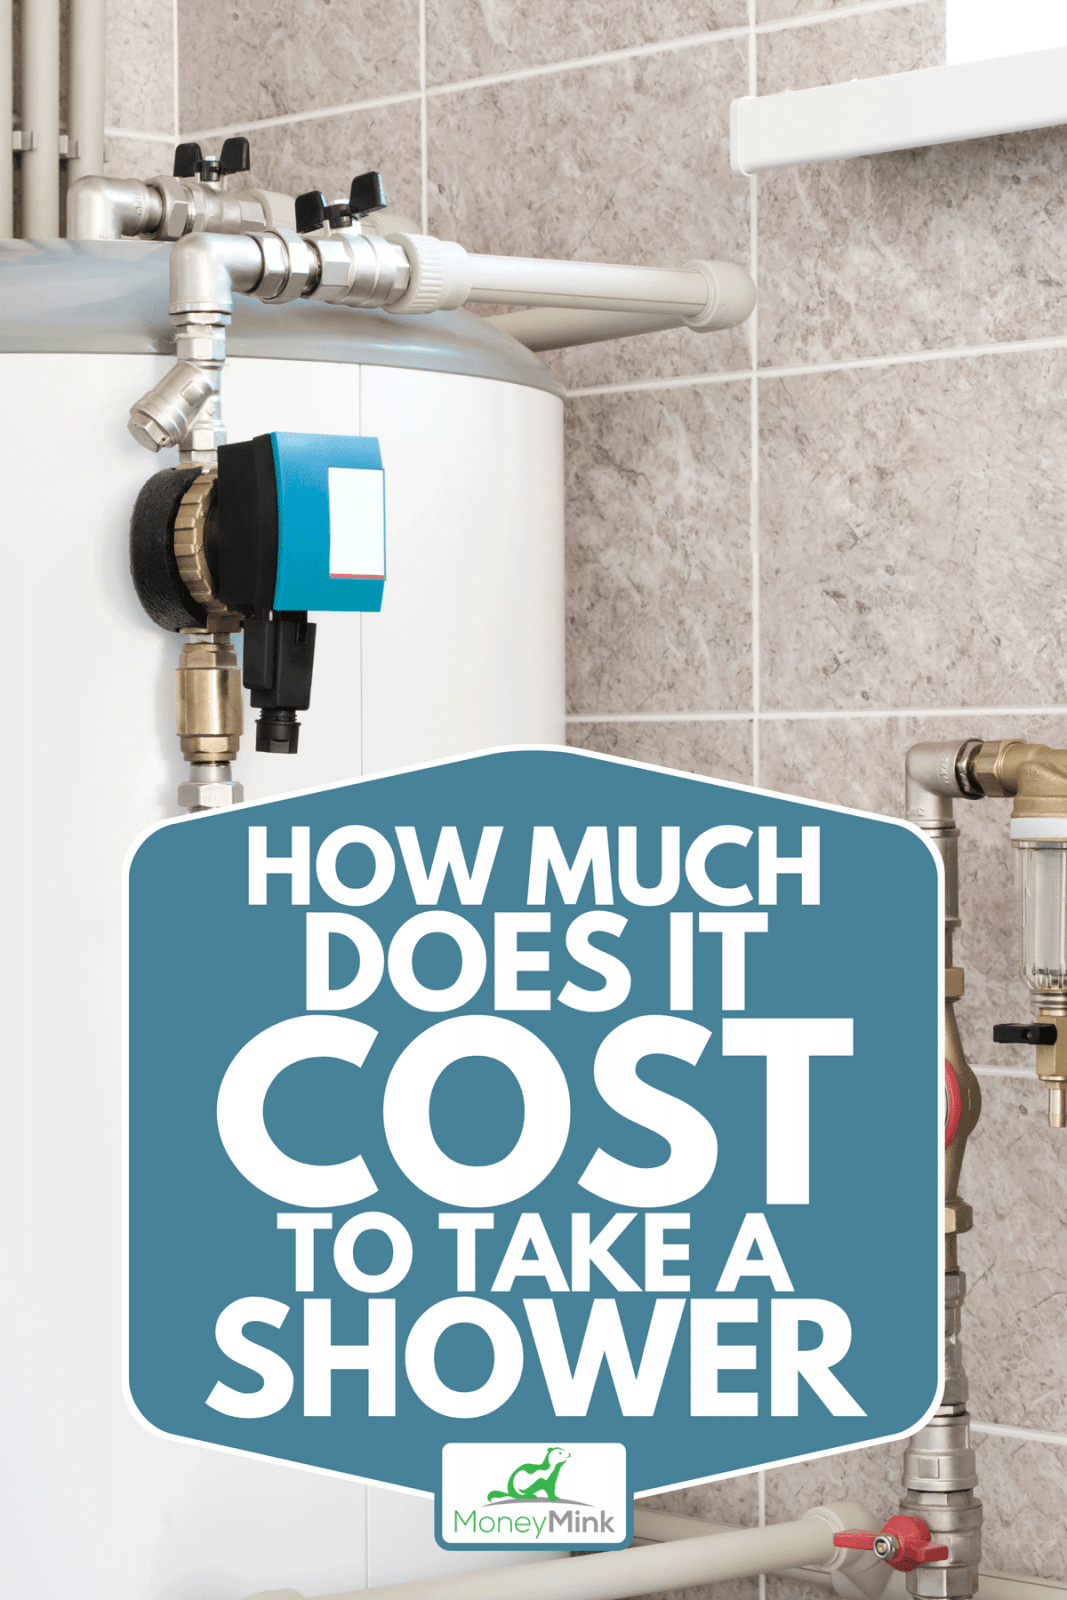 A house water heating boiler with pump, ball valves and filters, How Much Does It Cost To Take A Shower